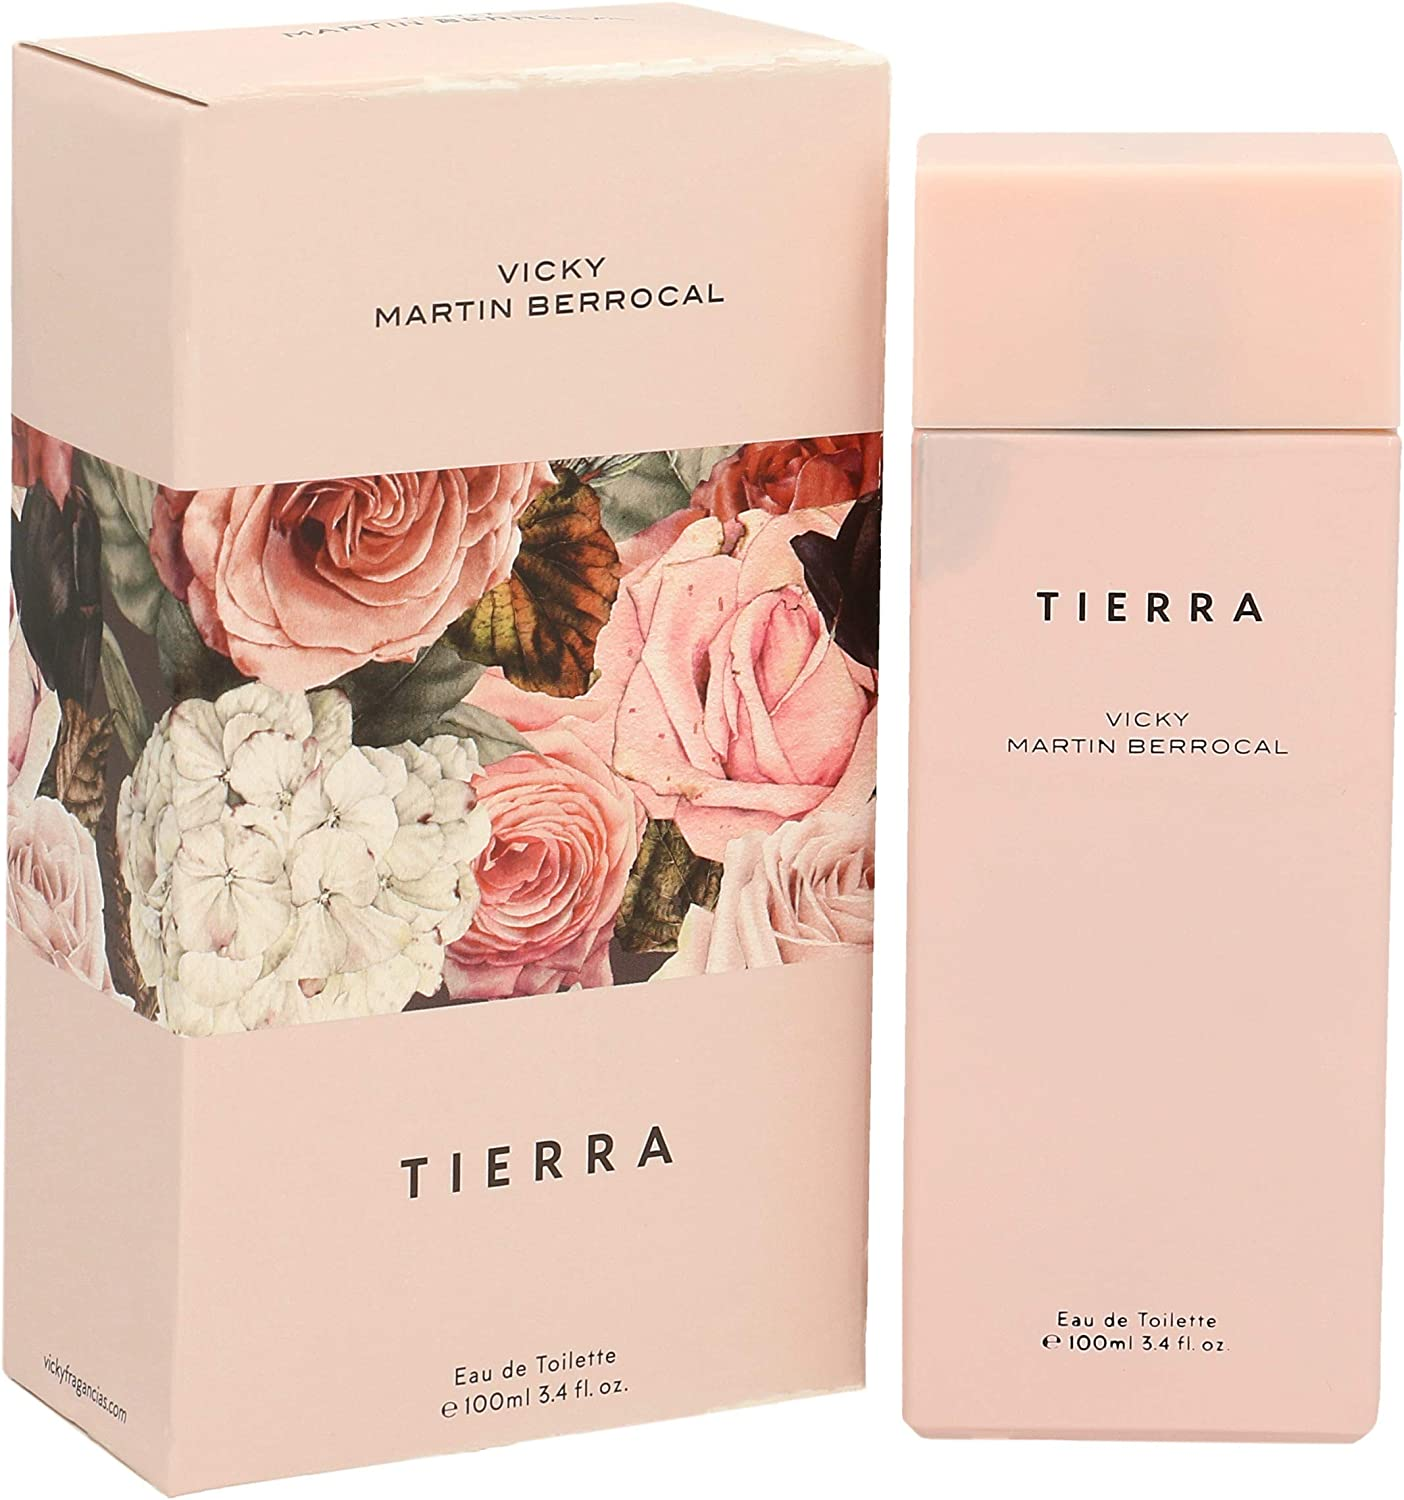 VICKY MARTIN BERROCAL colonia tierra spray 100 ml: Amazon.es: Belleza